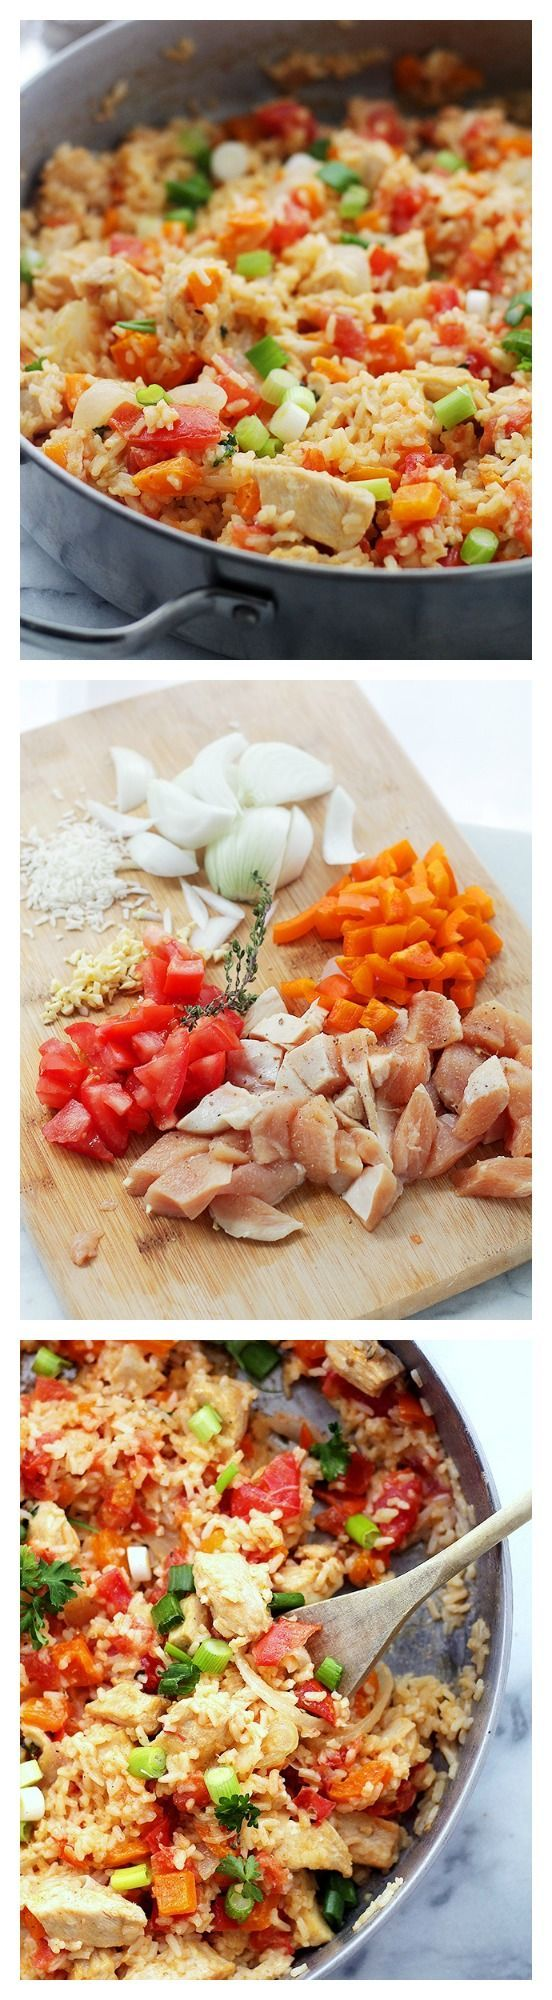 Chicken, Rice and Vegetable Skillet   www.diethood.com   Everything you need for a delicious dinner made in just one skillet!   #recipes #dinner #chicken